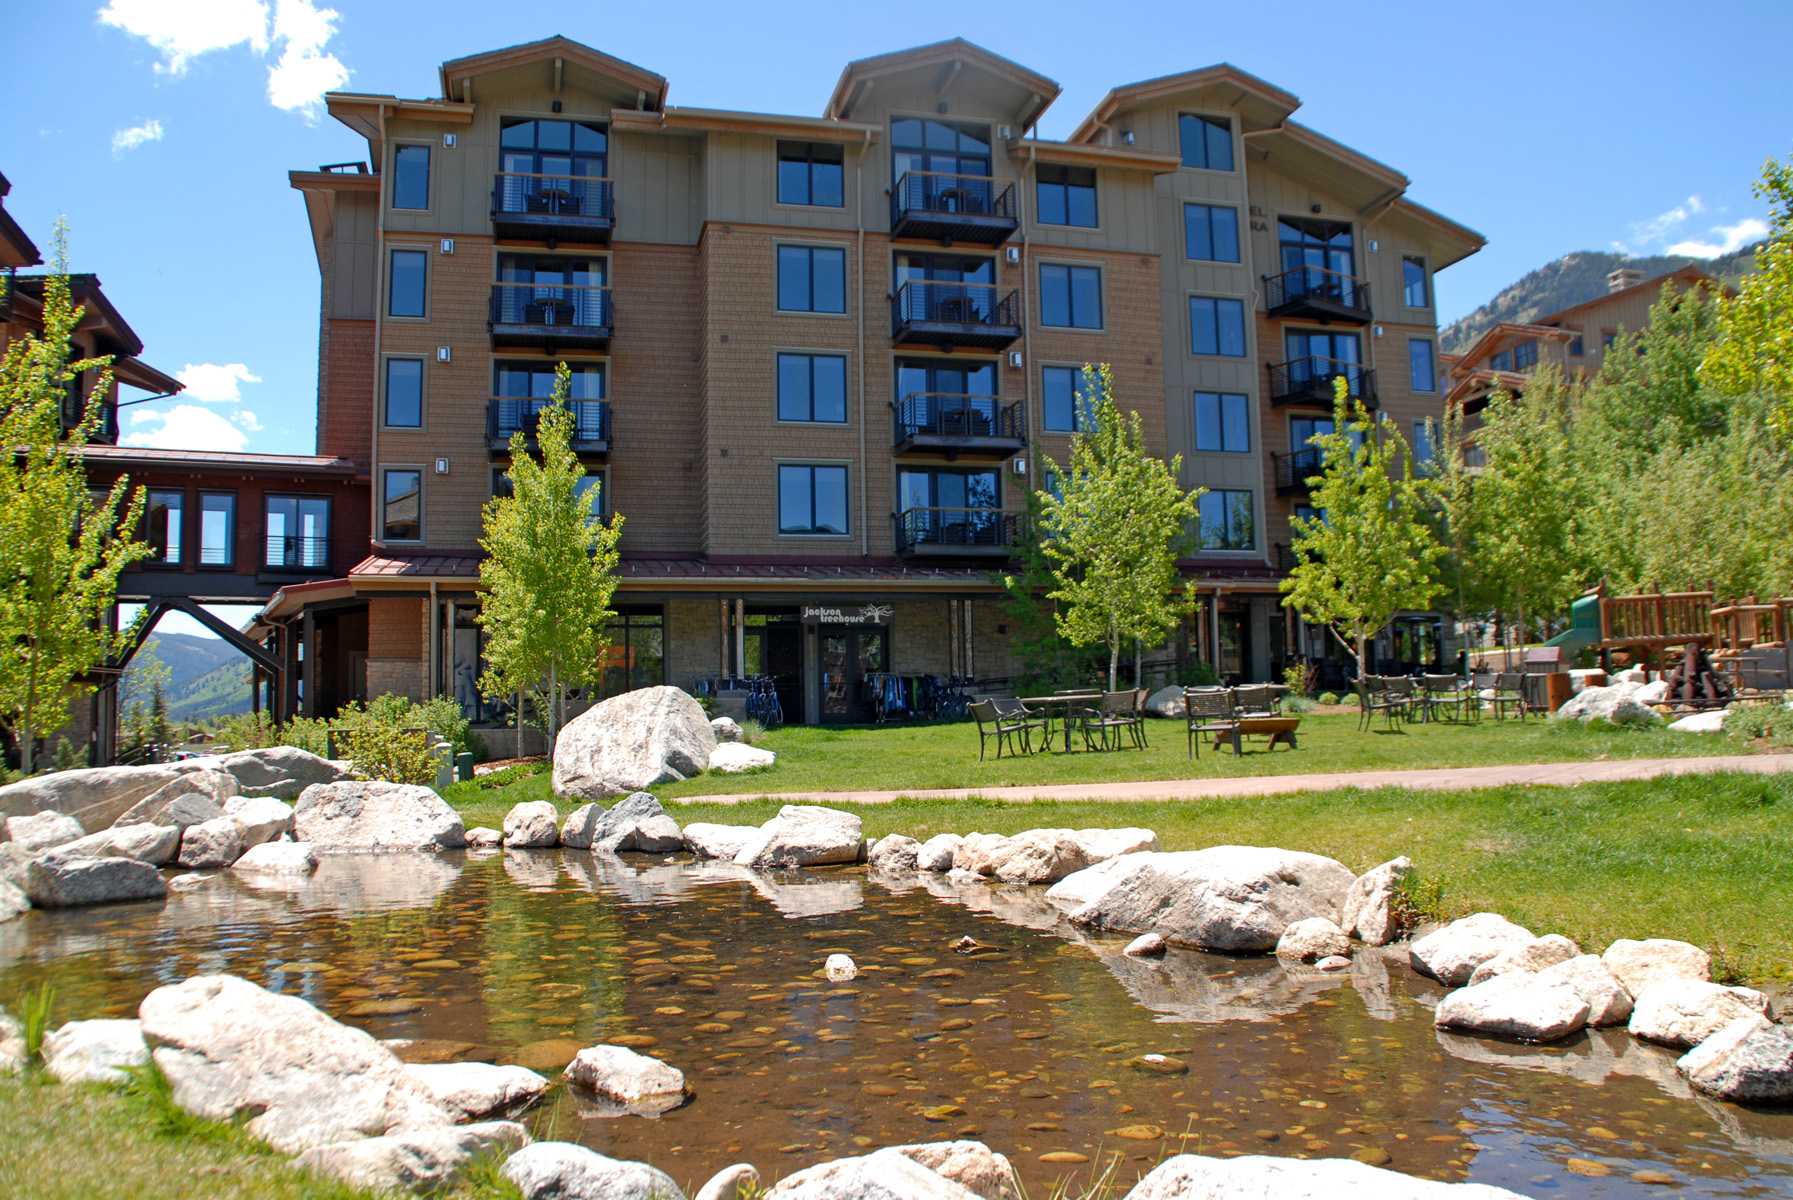 Copropriété pour l Vente à Hotel Terra ski-in/ski-out condo 3335 W. Village Road Unit 223 Teton Village, Wyoming, 83025 Jackson Hole, États-Unis